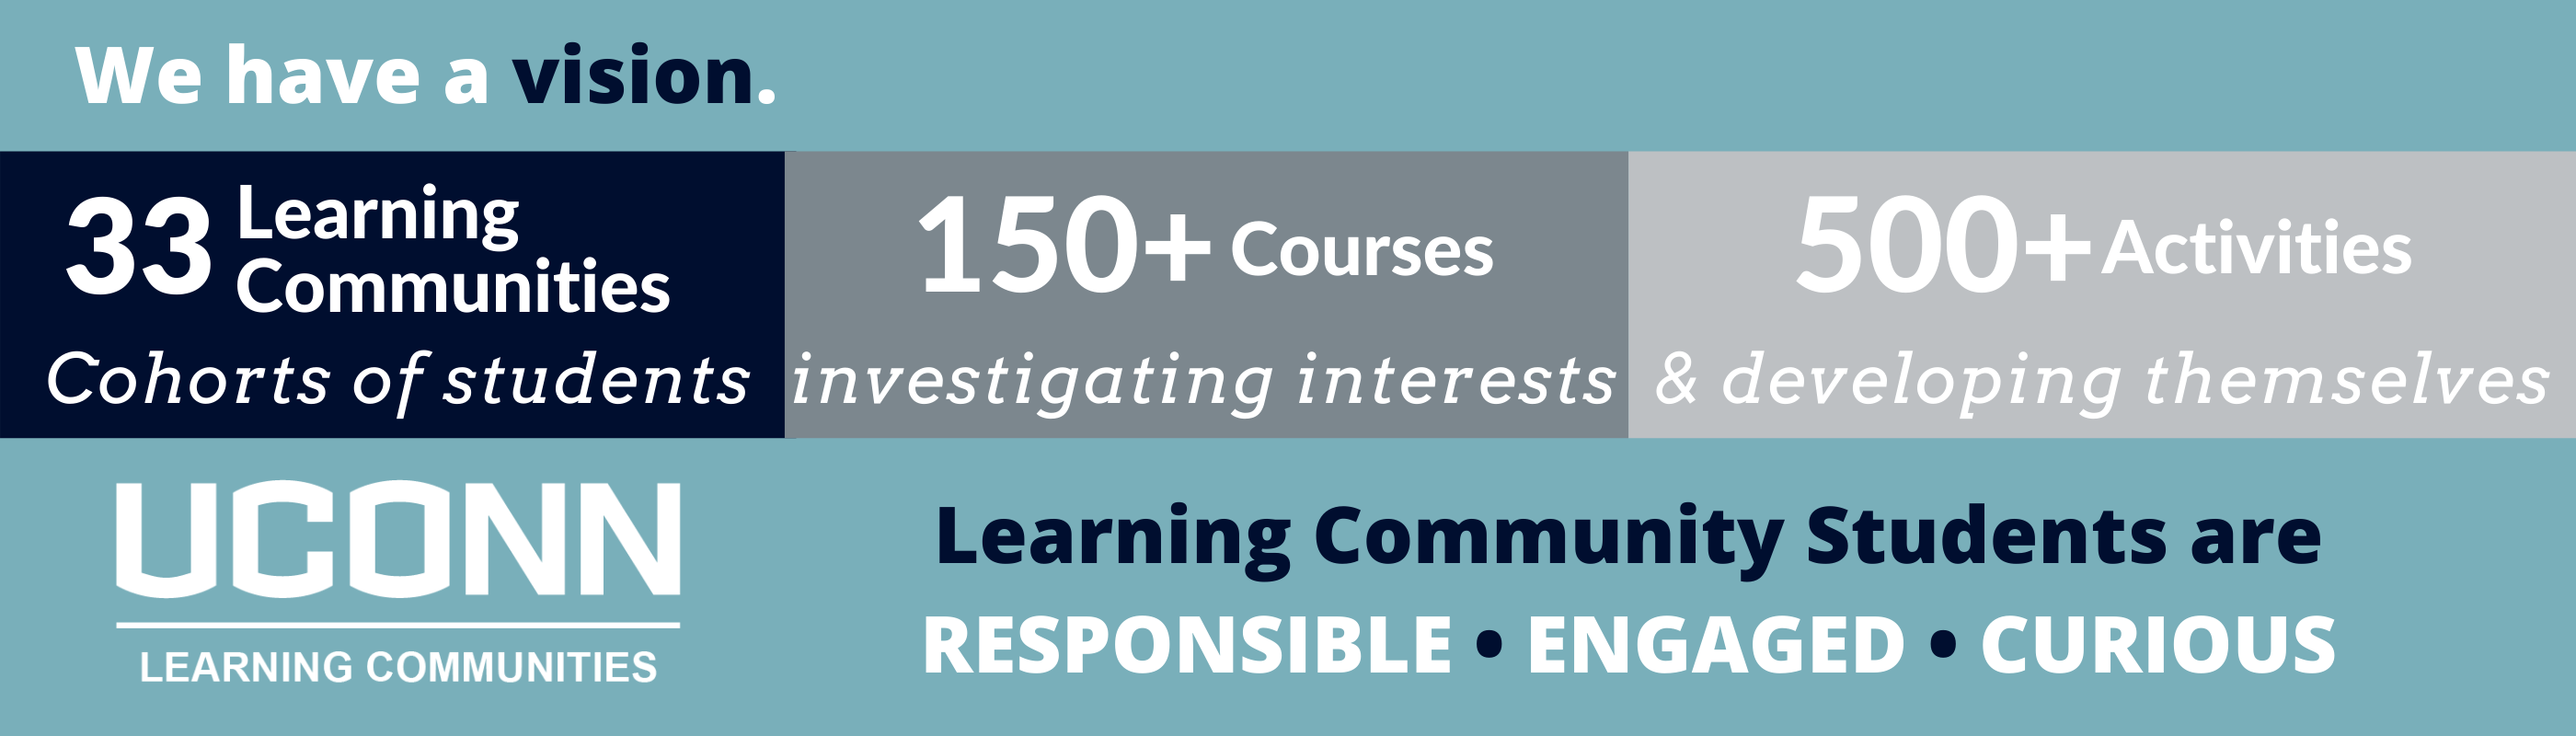 Vision: 33 Learning Communities provide cohorts of students opportunities to investigate areas of interest and develop themselves through 150+ courses and 500+ activities